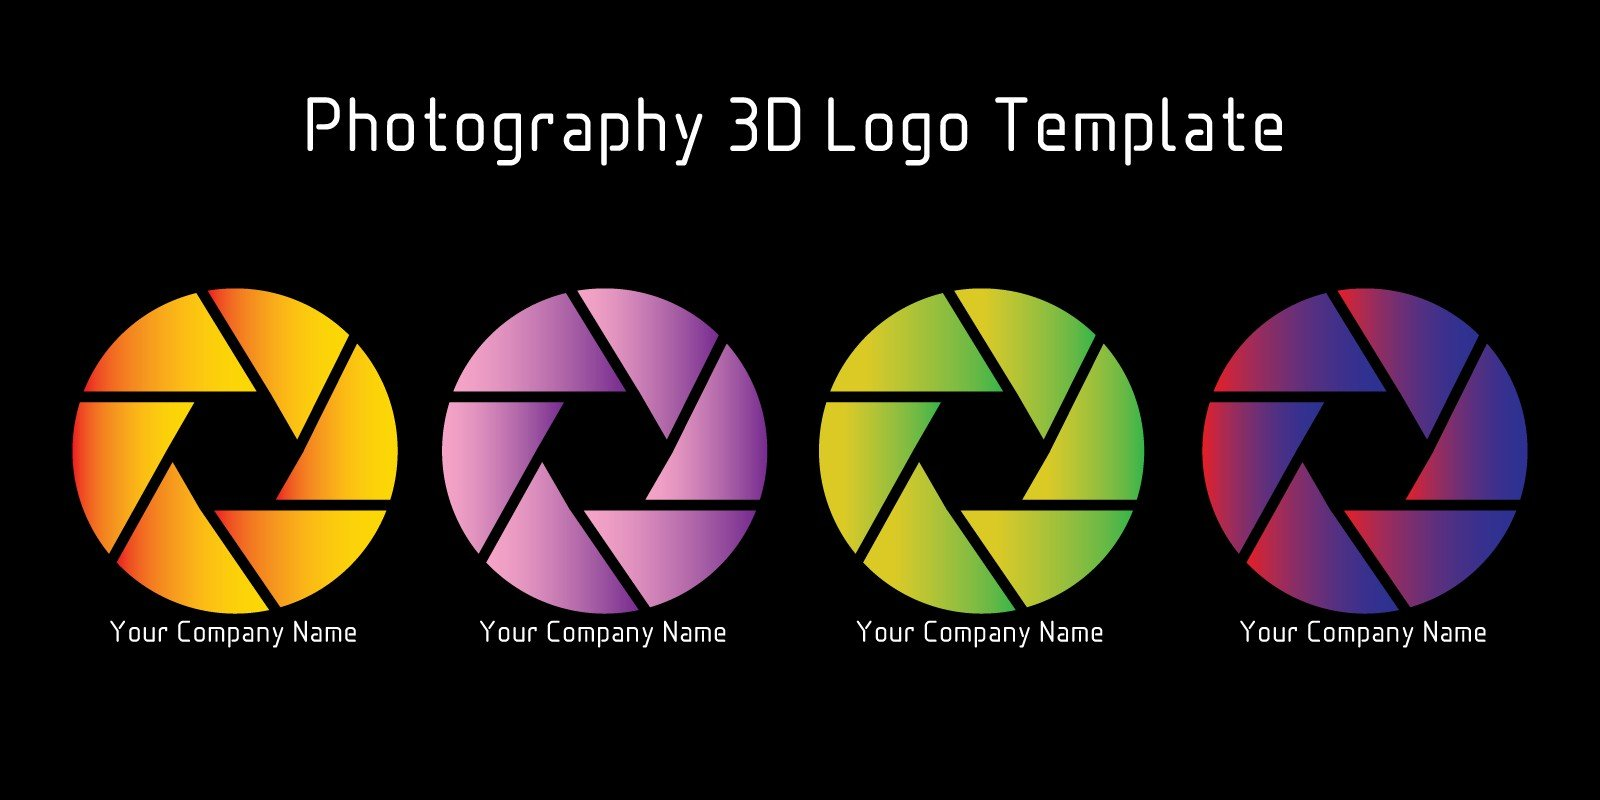 Photography 3D Logo Template